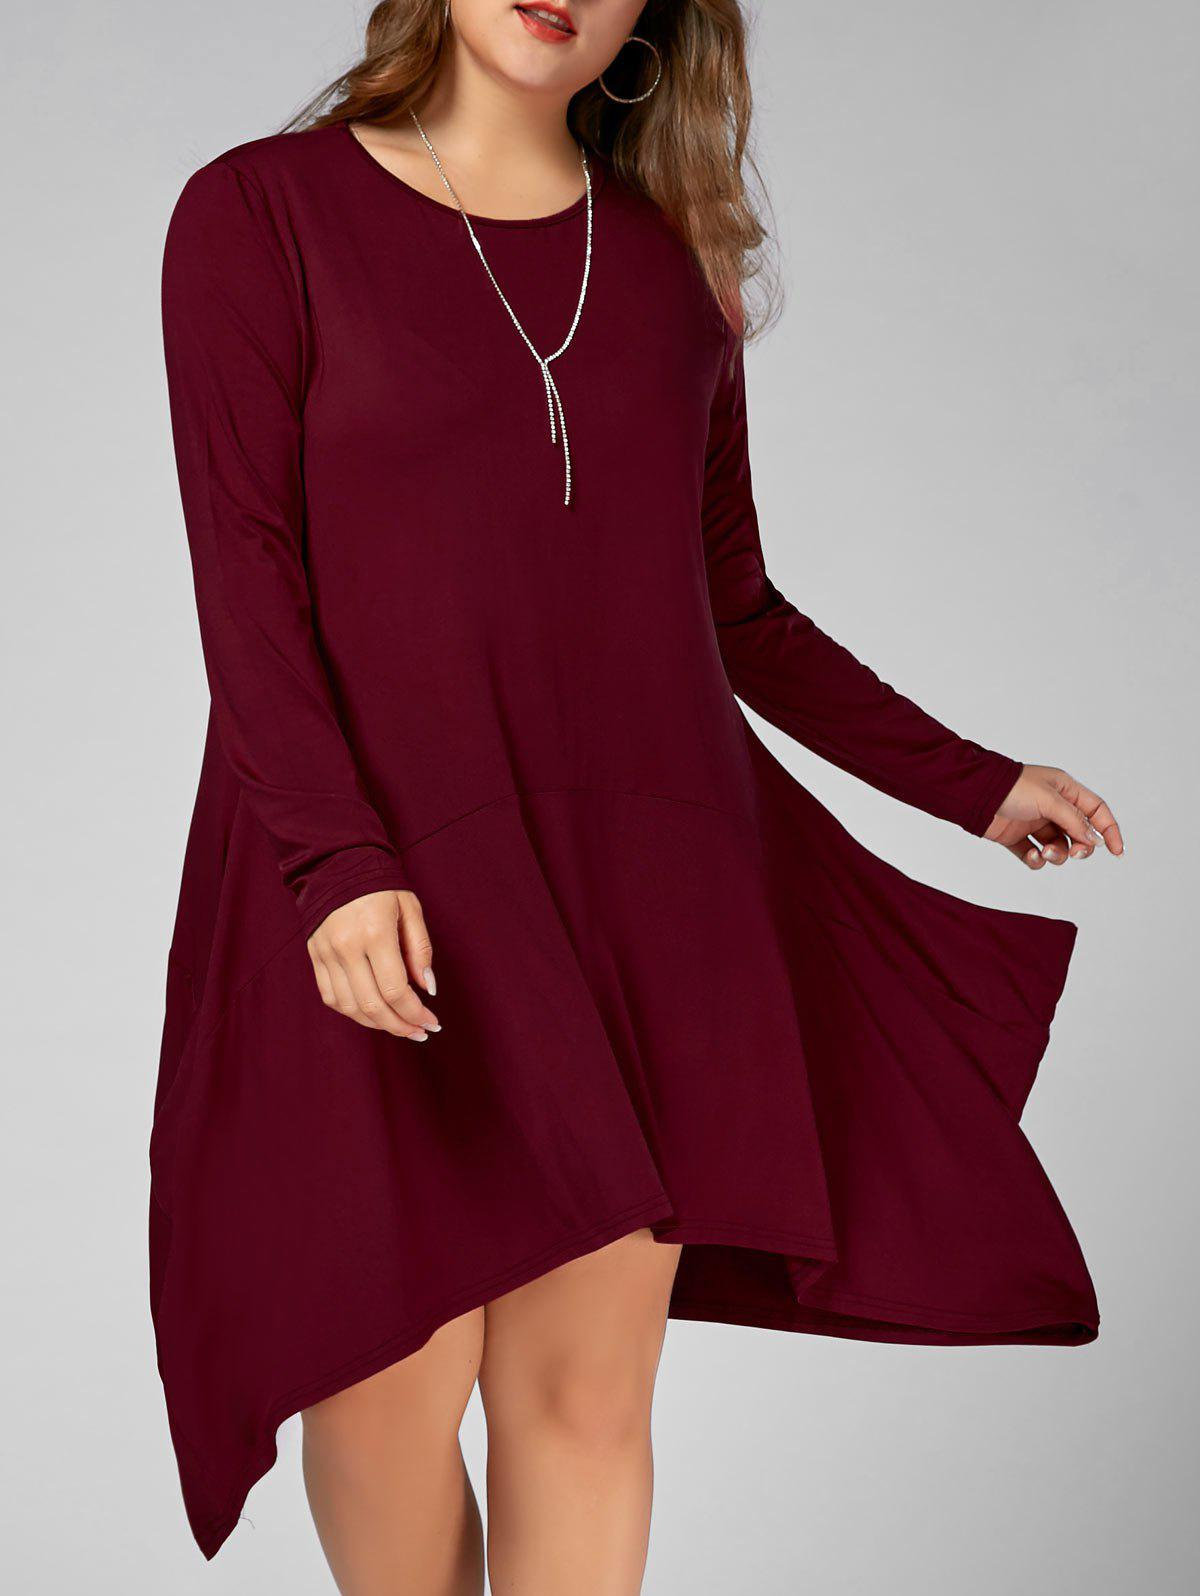 Long Sleeve Plus Size Asymmetric T-shirt Dress with PocketsWOMEN<br><br>Size: 4XL; Color: WINE RED; Style: Casual; Material: Cotton Blend,Polyester; Silhouette: Asymmetrical; Dresses Length: Knee-Length; Neckline: Scoop Neck; Sleeve Length: Long Sleeves; Pattern Type: Solid Color; With Belt: No; Season: Fall,Spring; Weight: 0.4500kg; Package Contents: 1 x Dress;